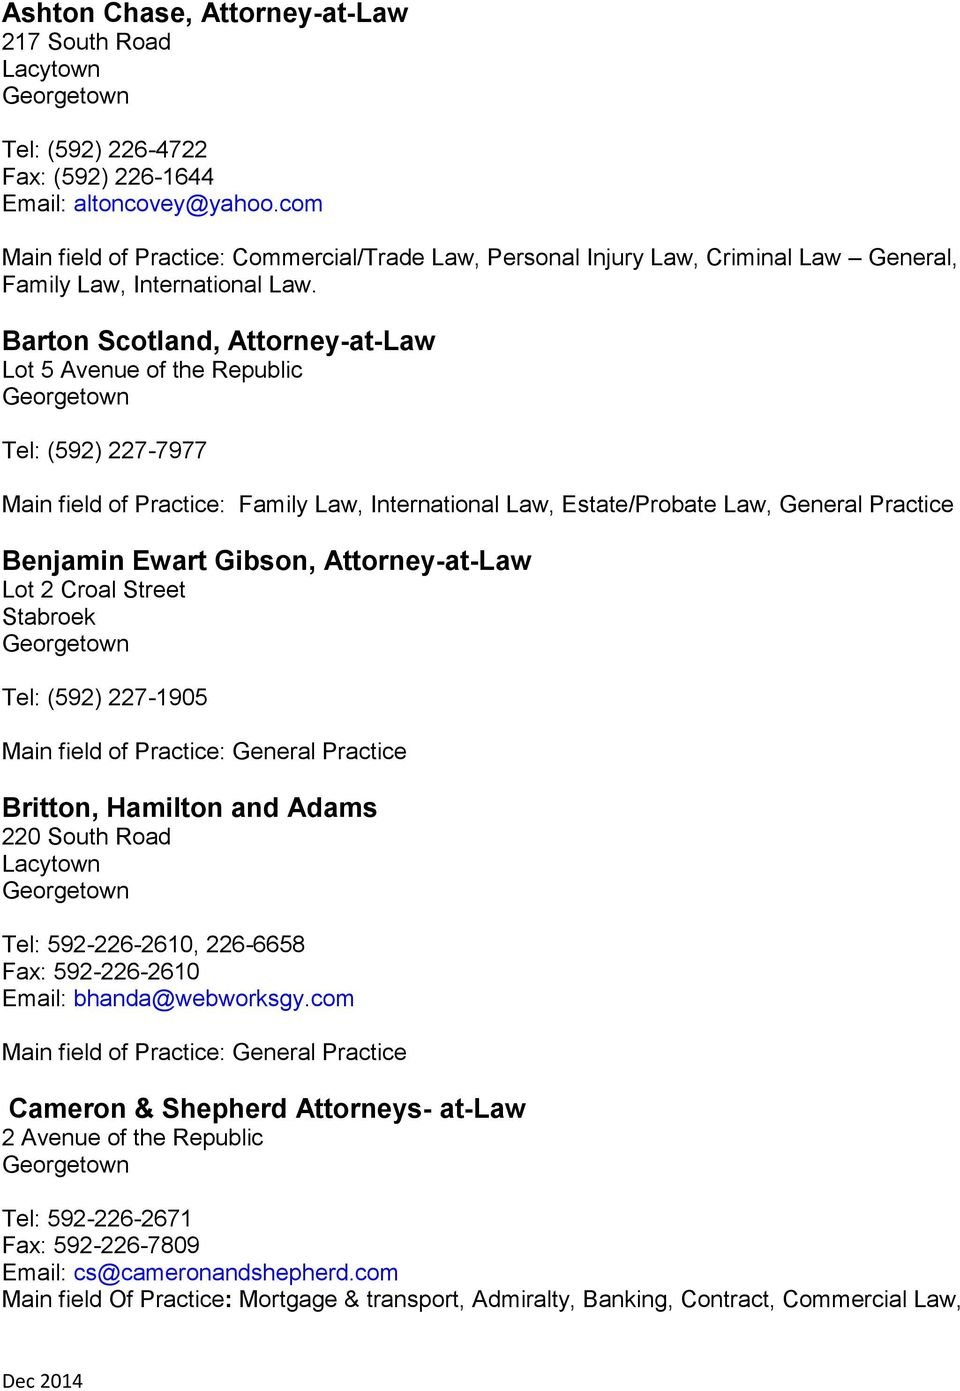 Barton Scotland, Attorney-at-Law Lot 5 Avenue of the Republic Tel: (592) 227-7977 Main field of Practice: Family Law, International Law, Estate/Probate Law, General Practice Benjamin Ewart Gibson,